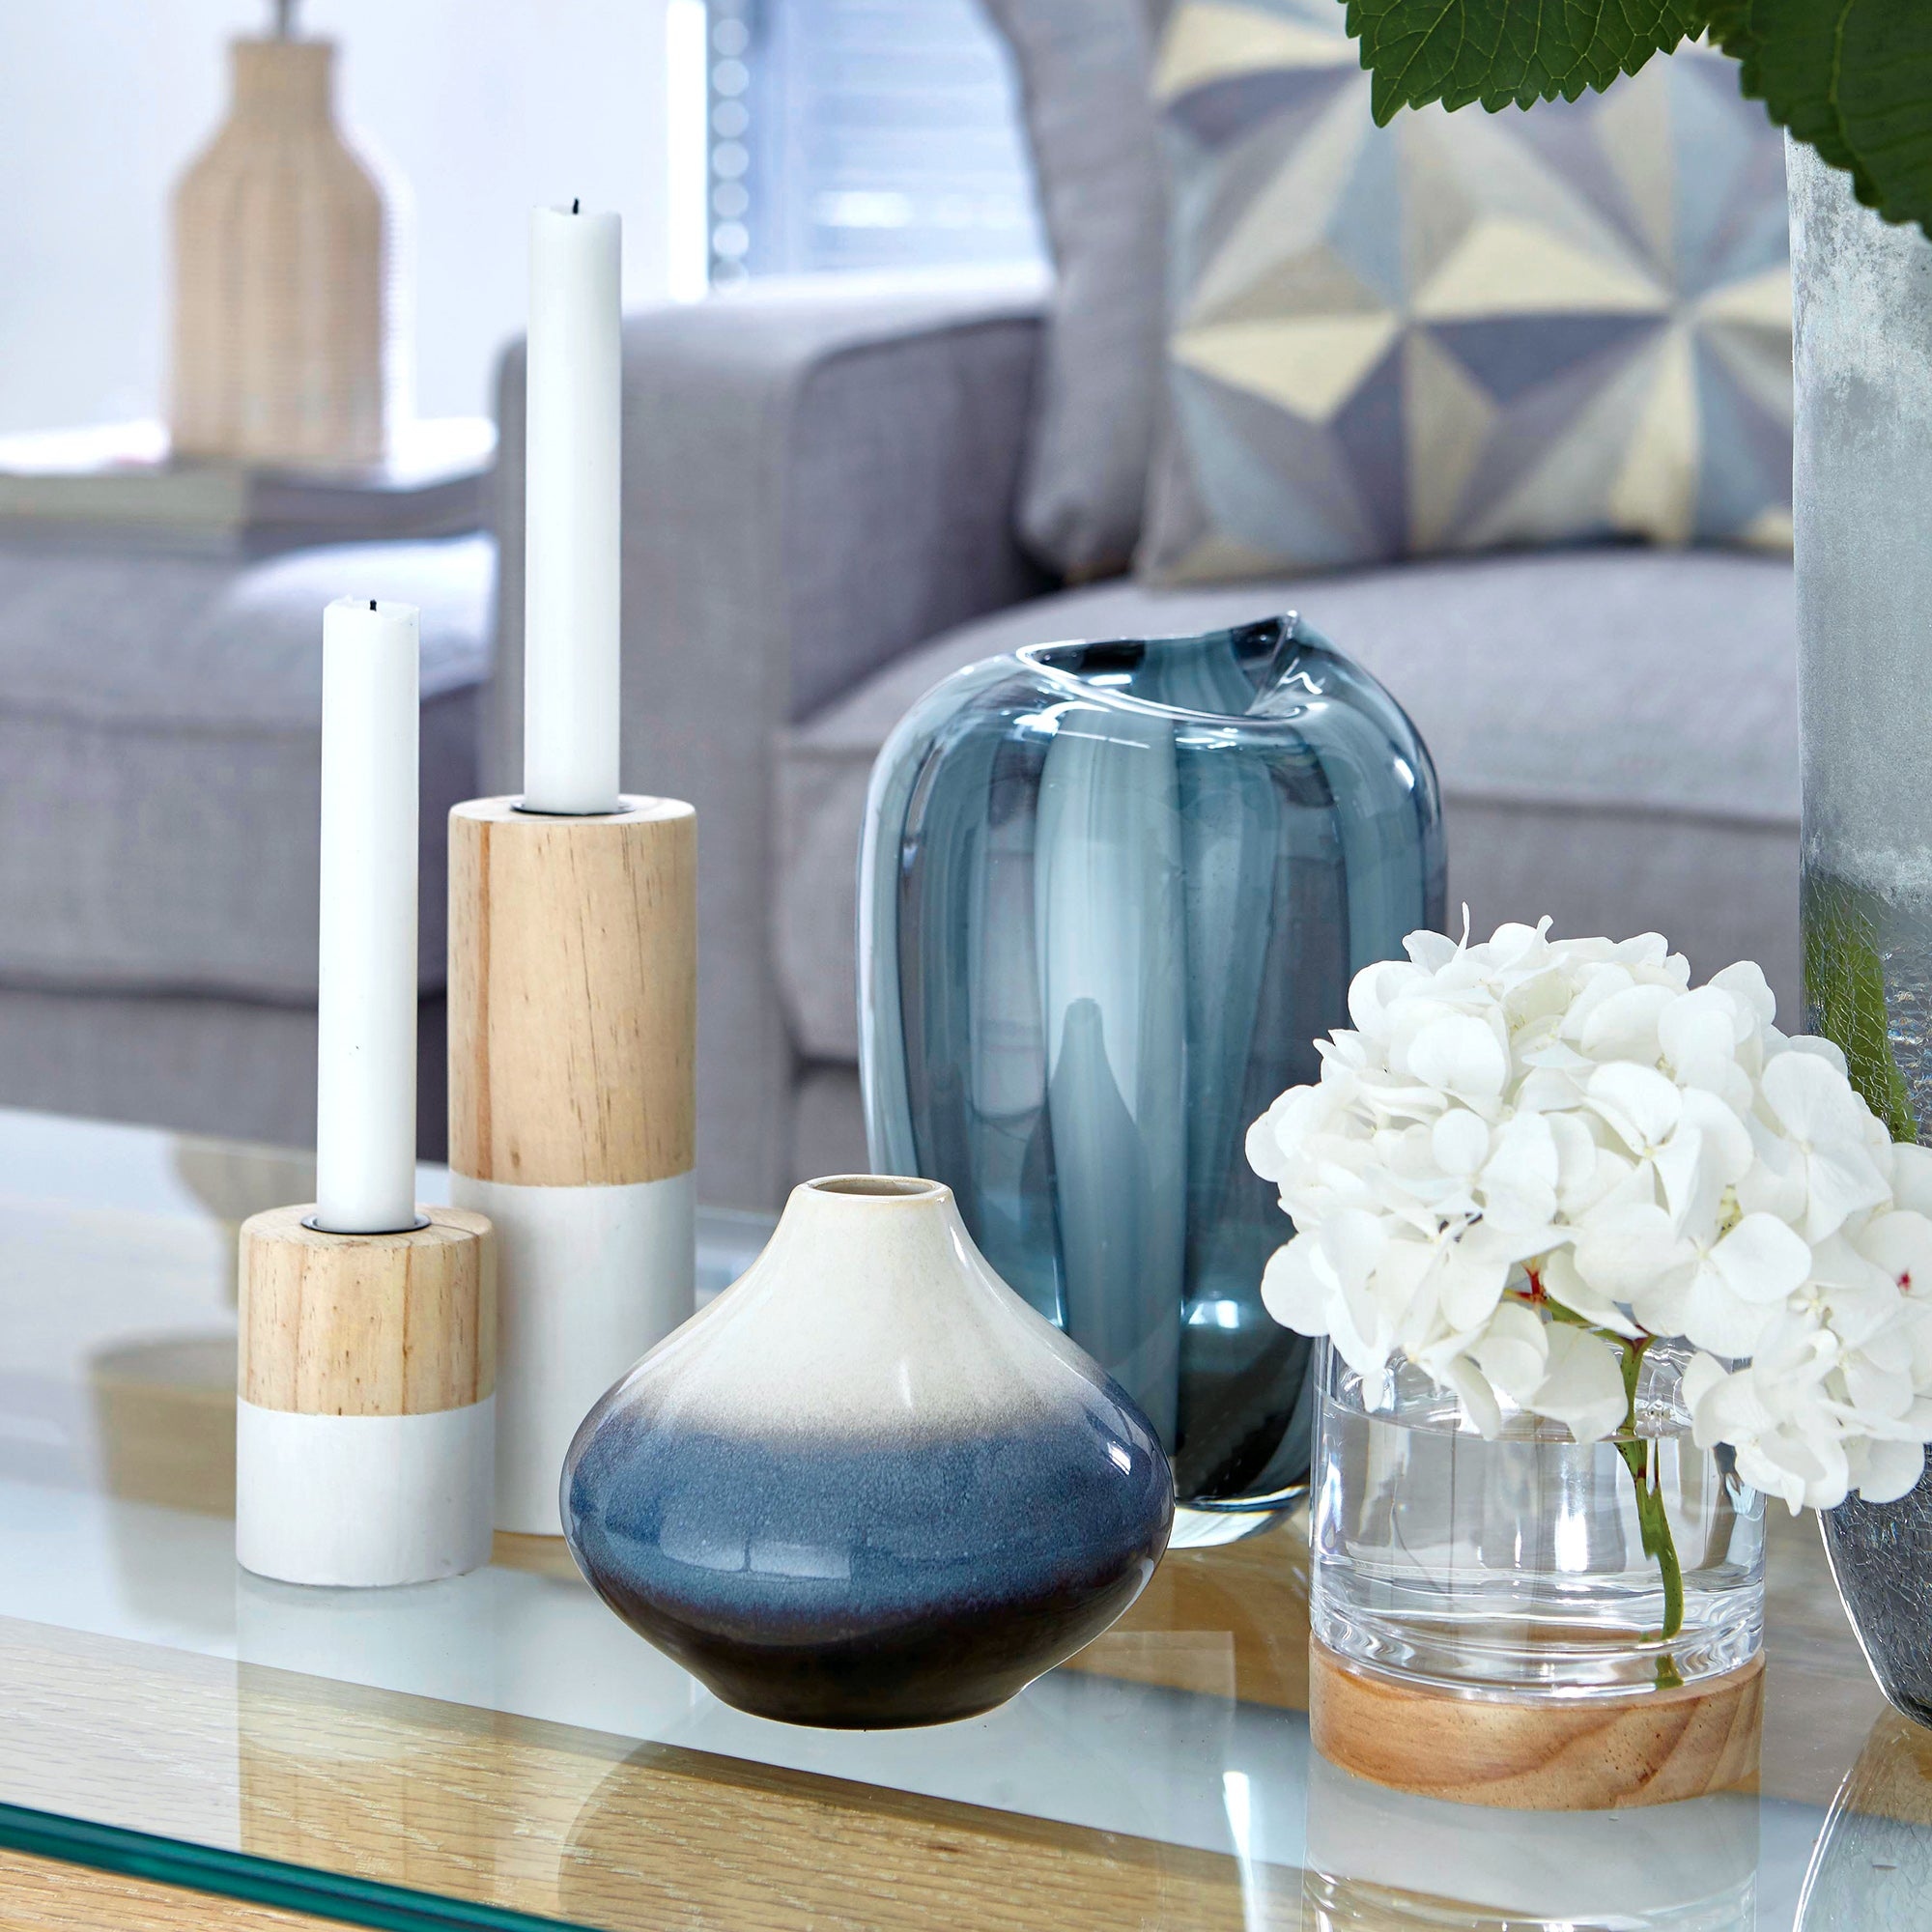 Purity Home Decor Collection